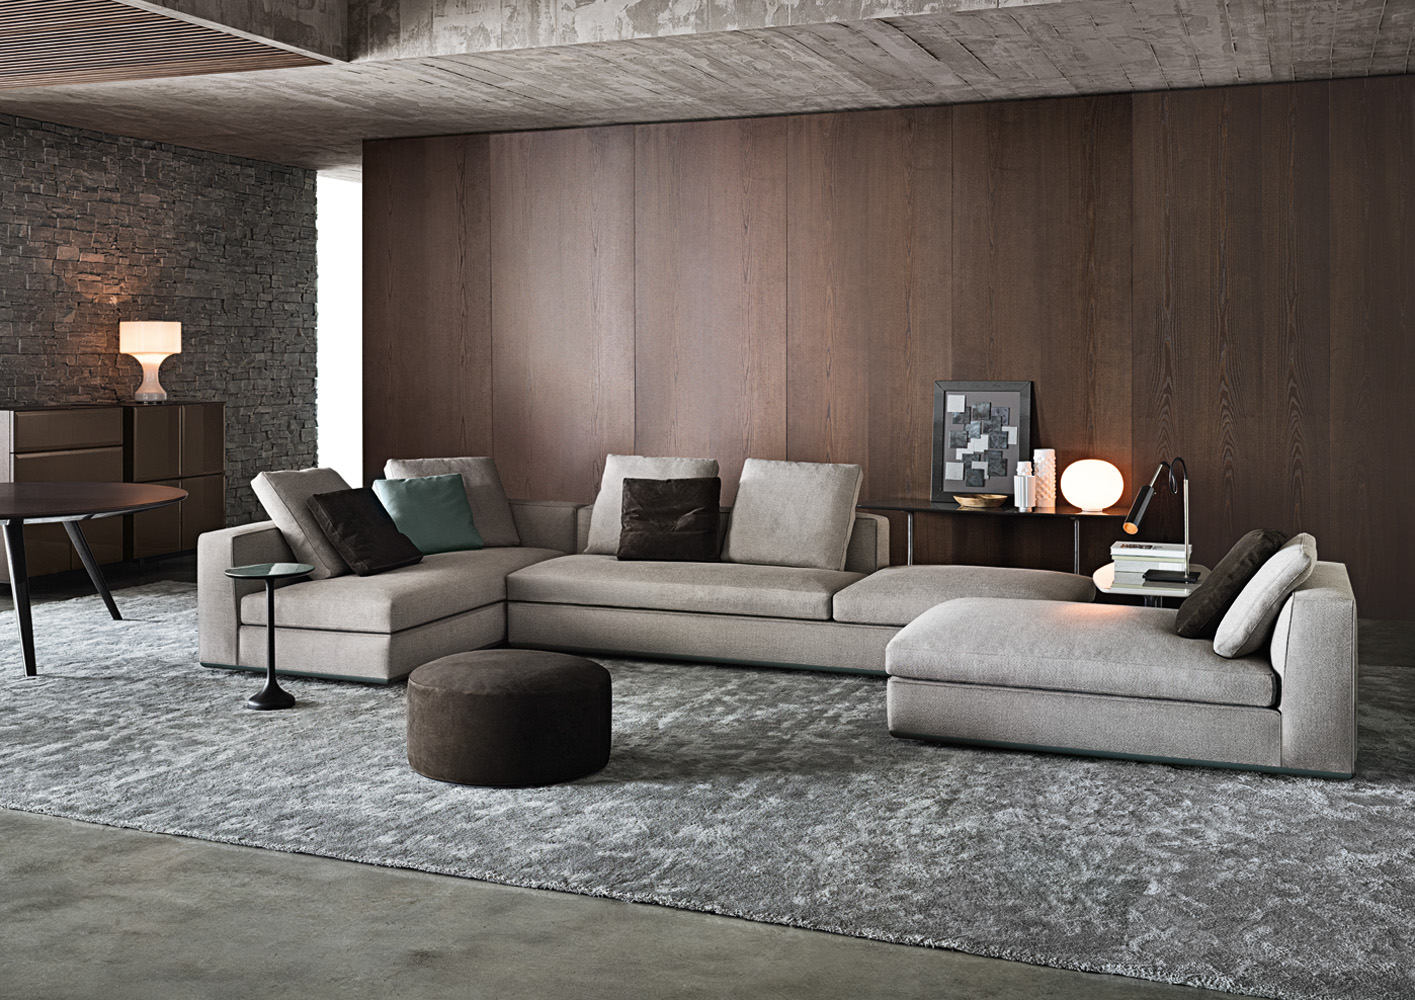 20 modish minotti sofas and seating systems. Black Bedroom Furniture Sets. Home Design Ideas